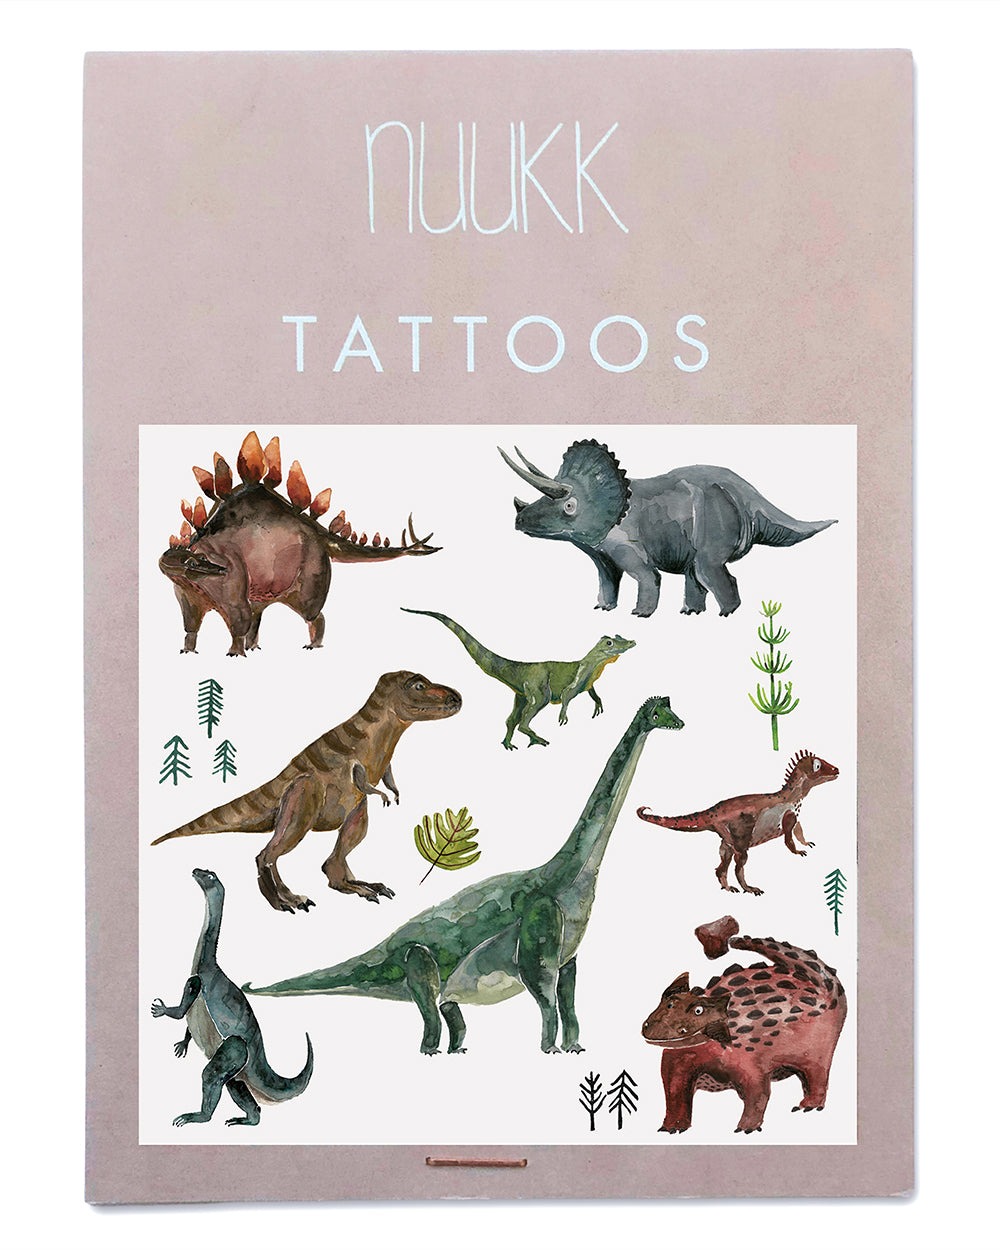 nuukk - Tattoos